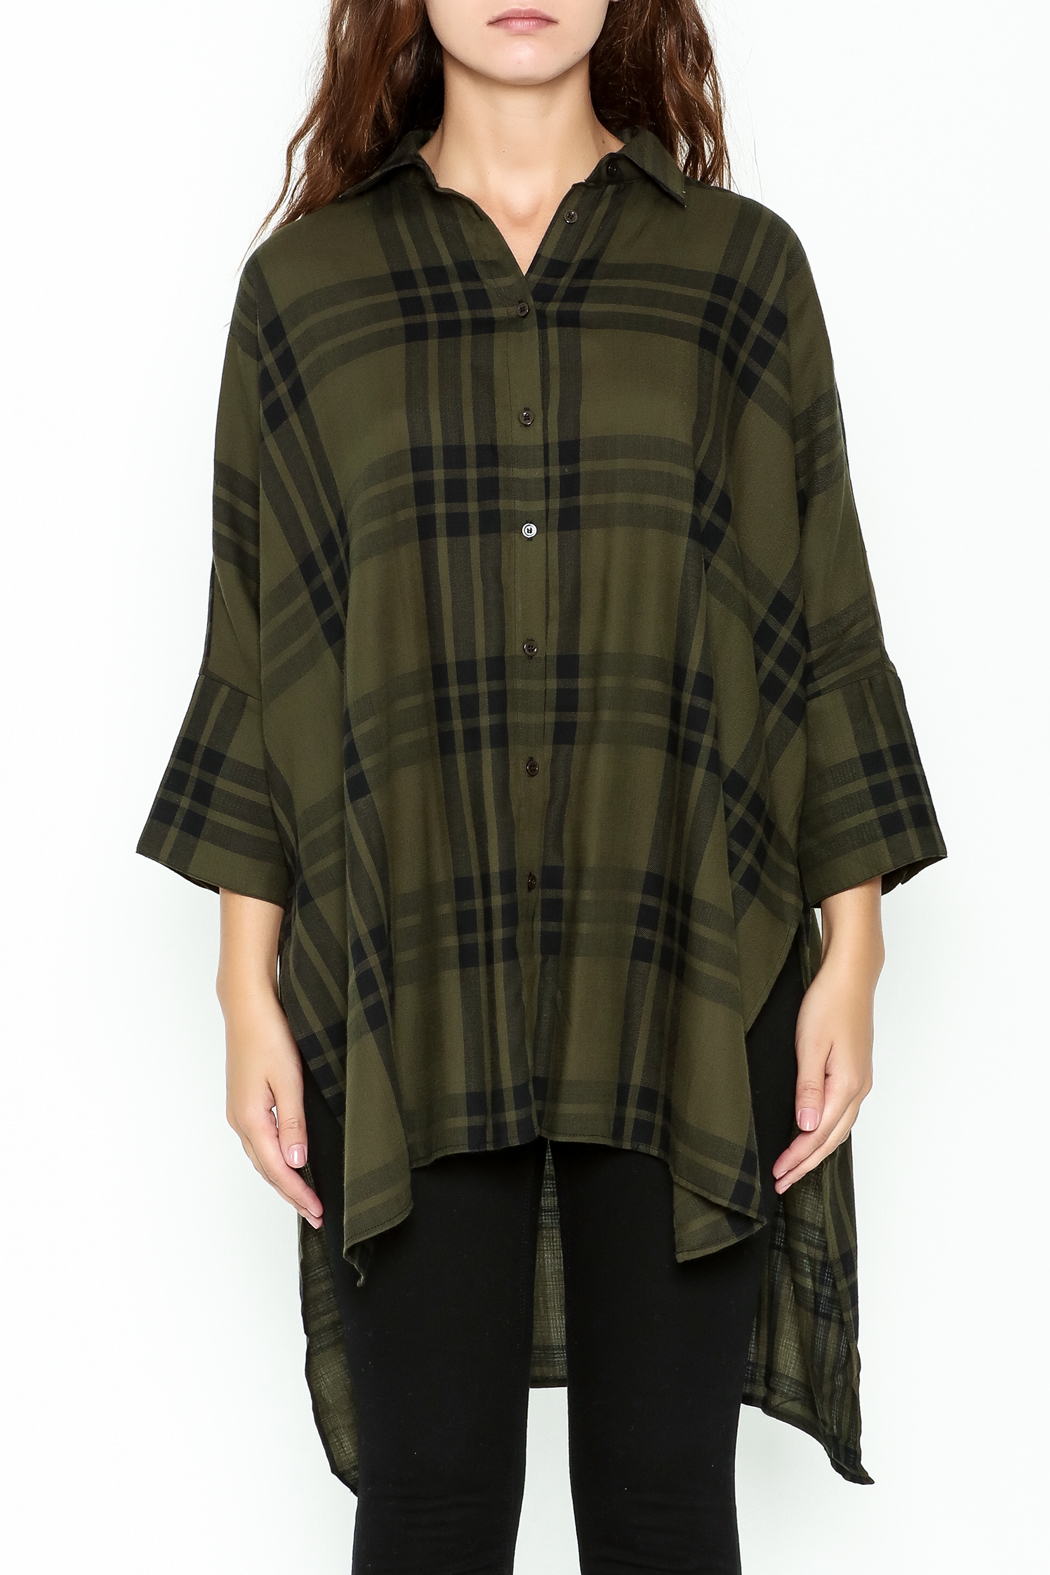 Katherine Barclay Oversized Button Up Tunic - Front Full Image